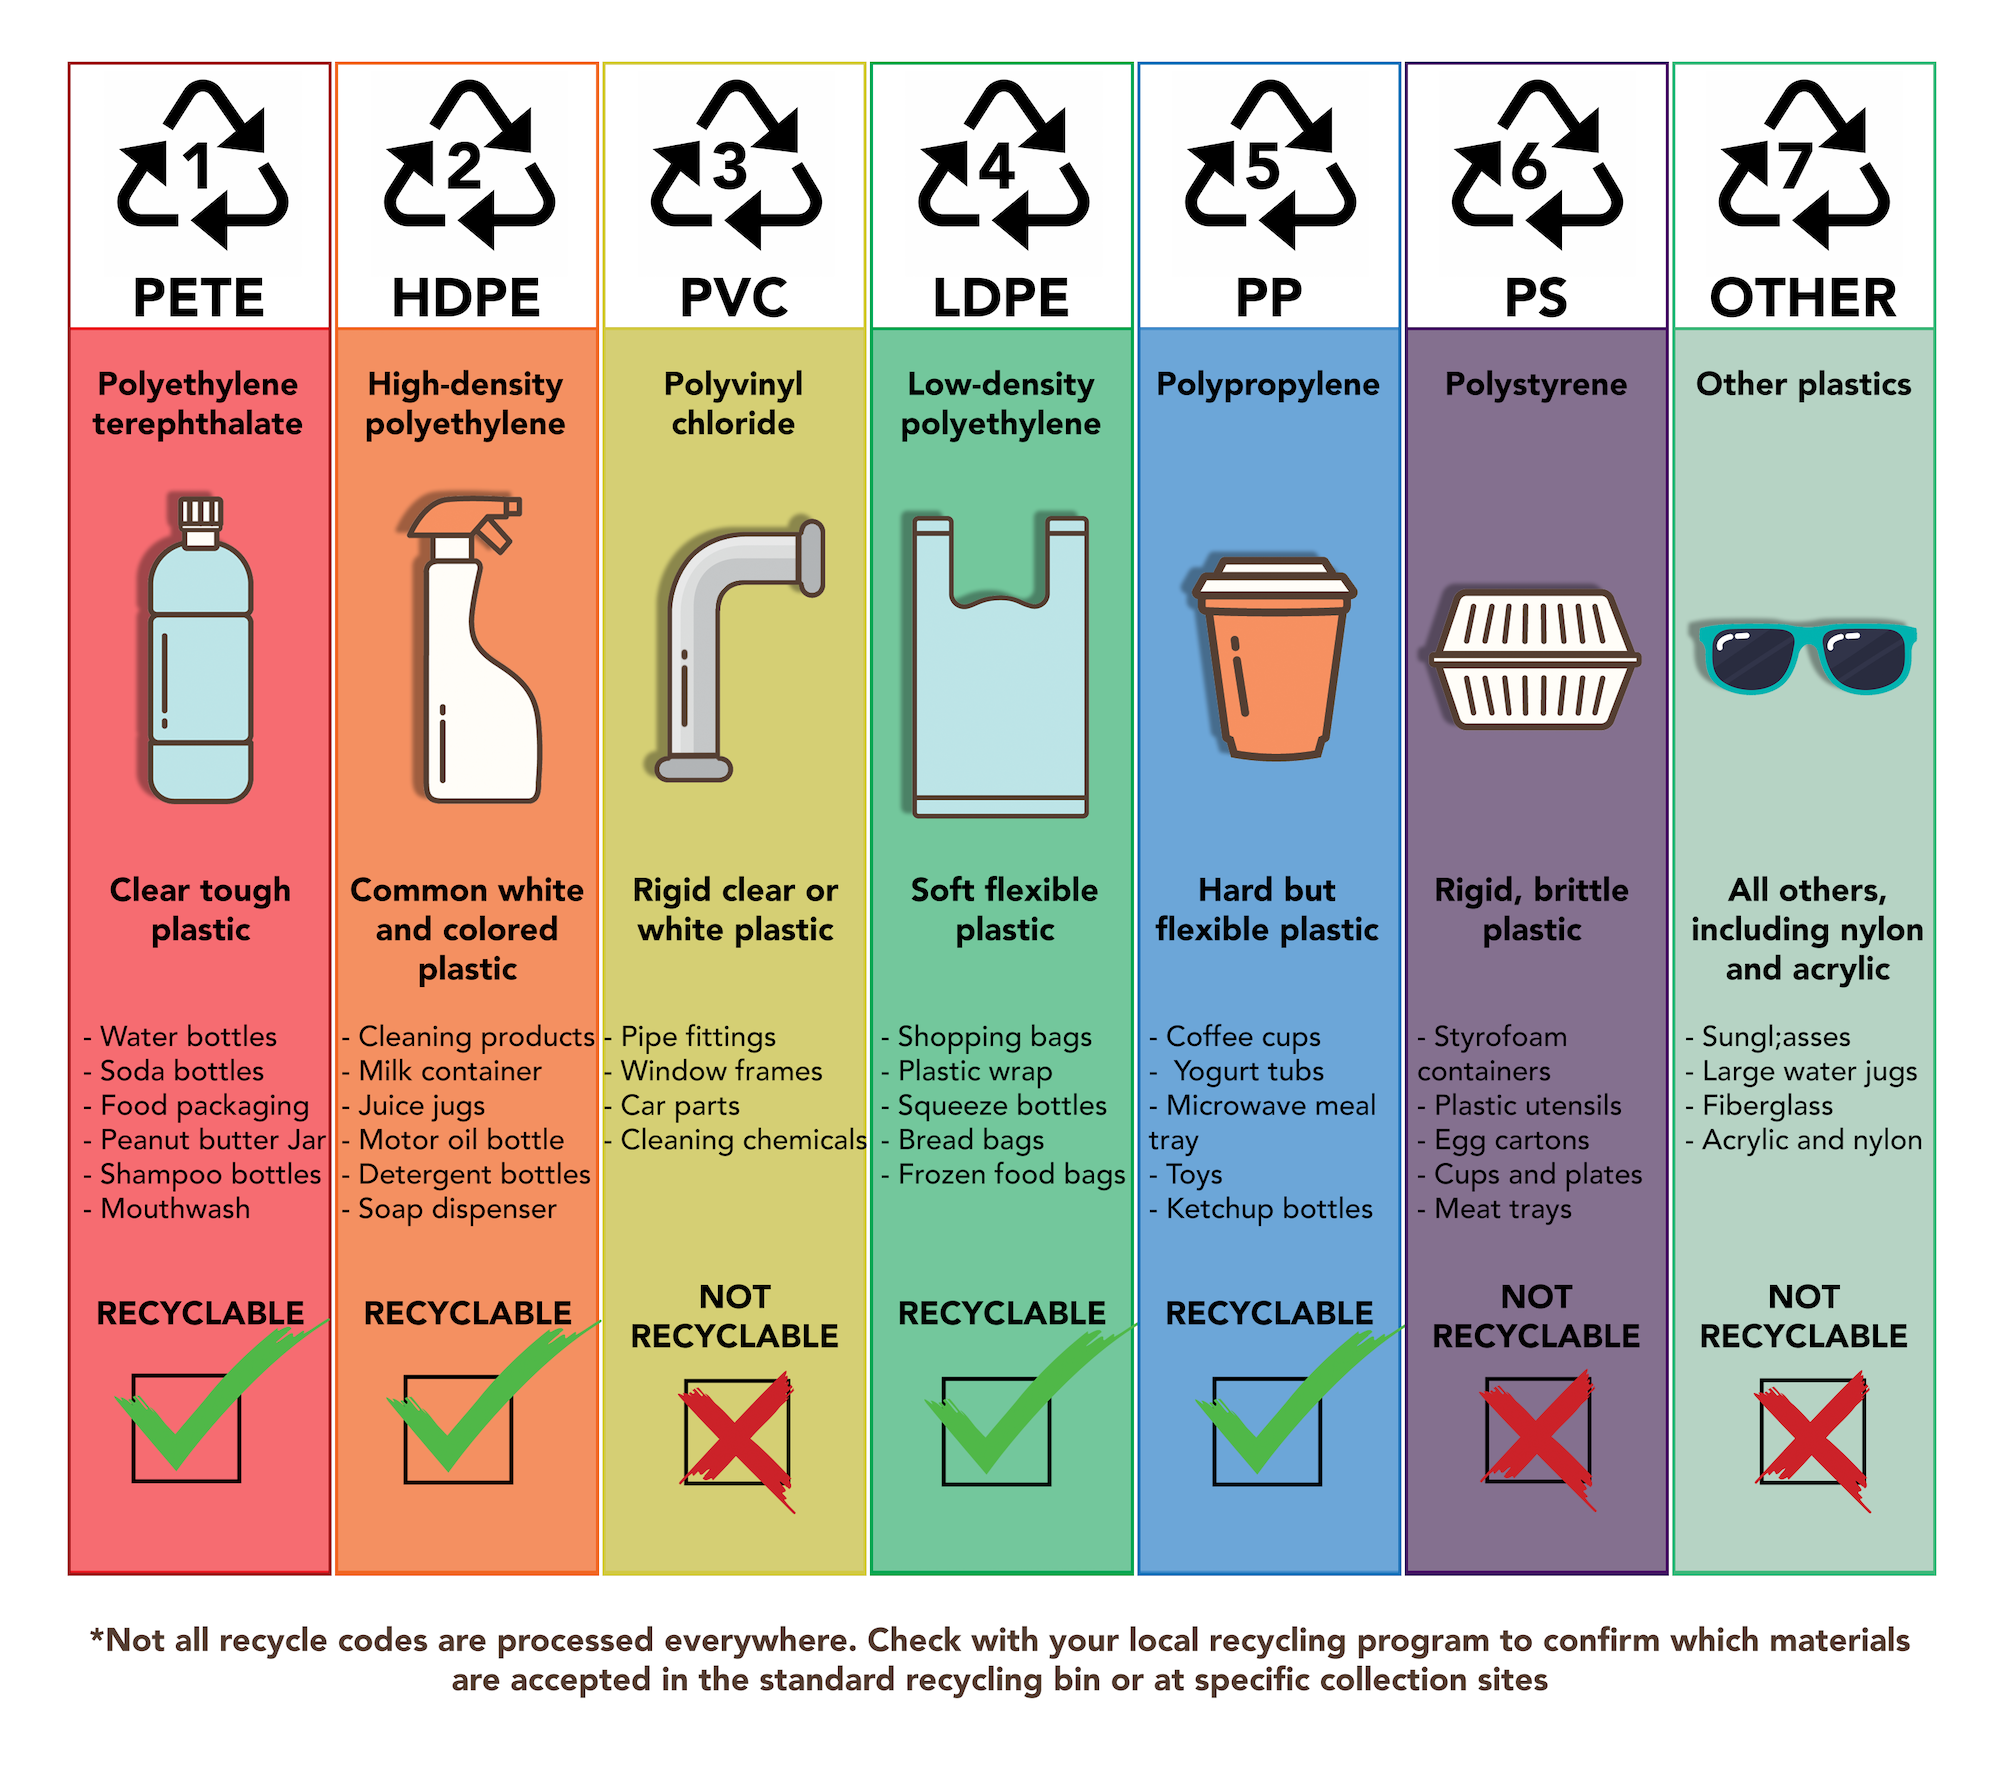 <p>Fig. 6. The breakdown of recycling codes.</p>